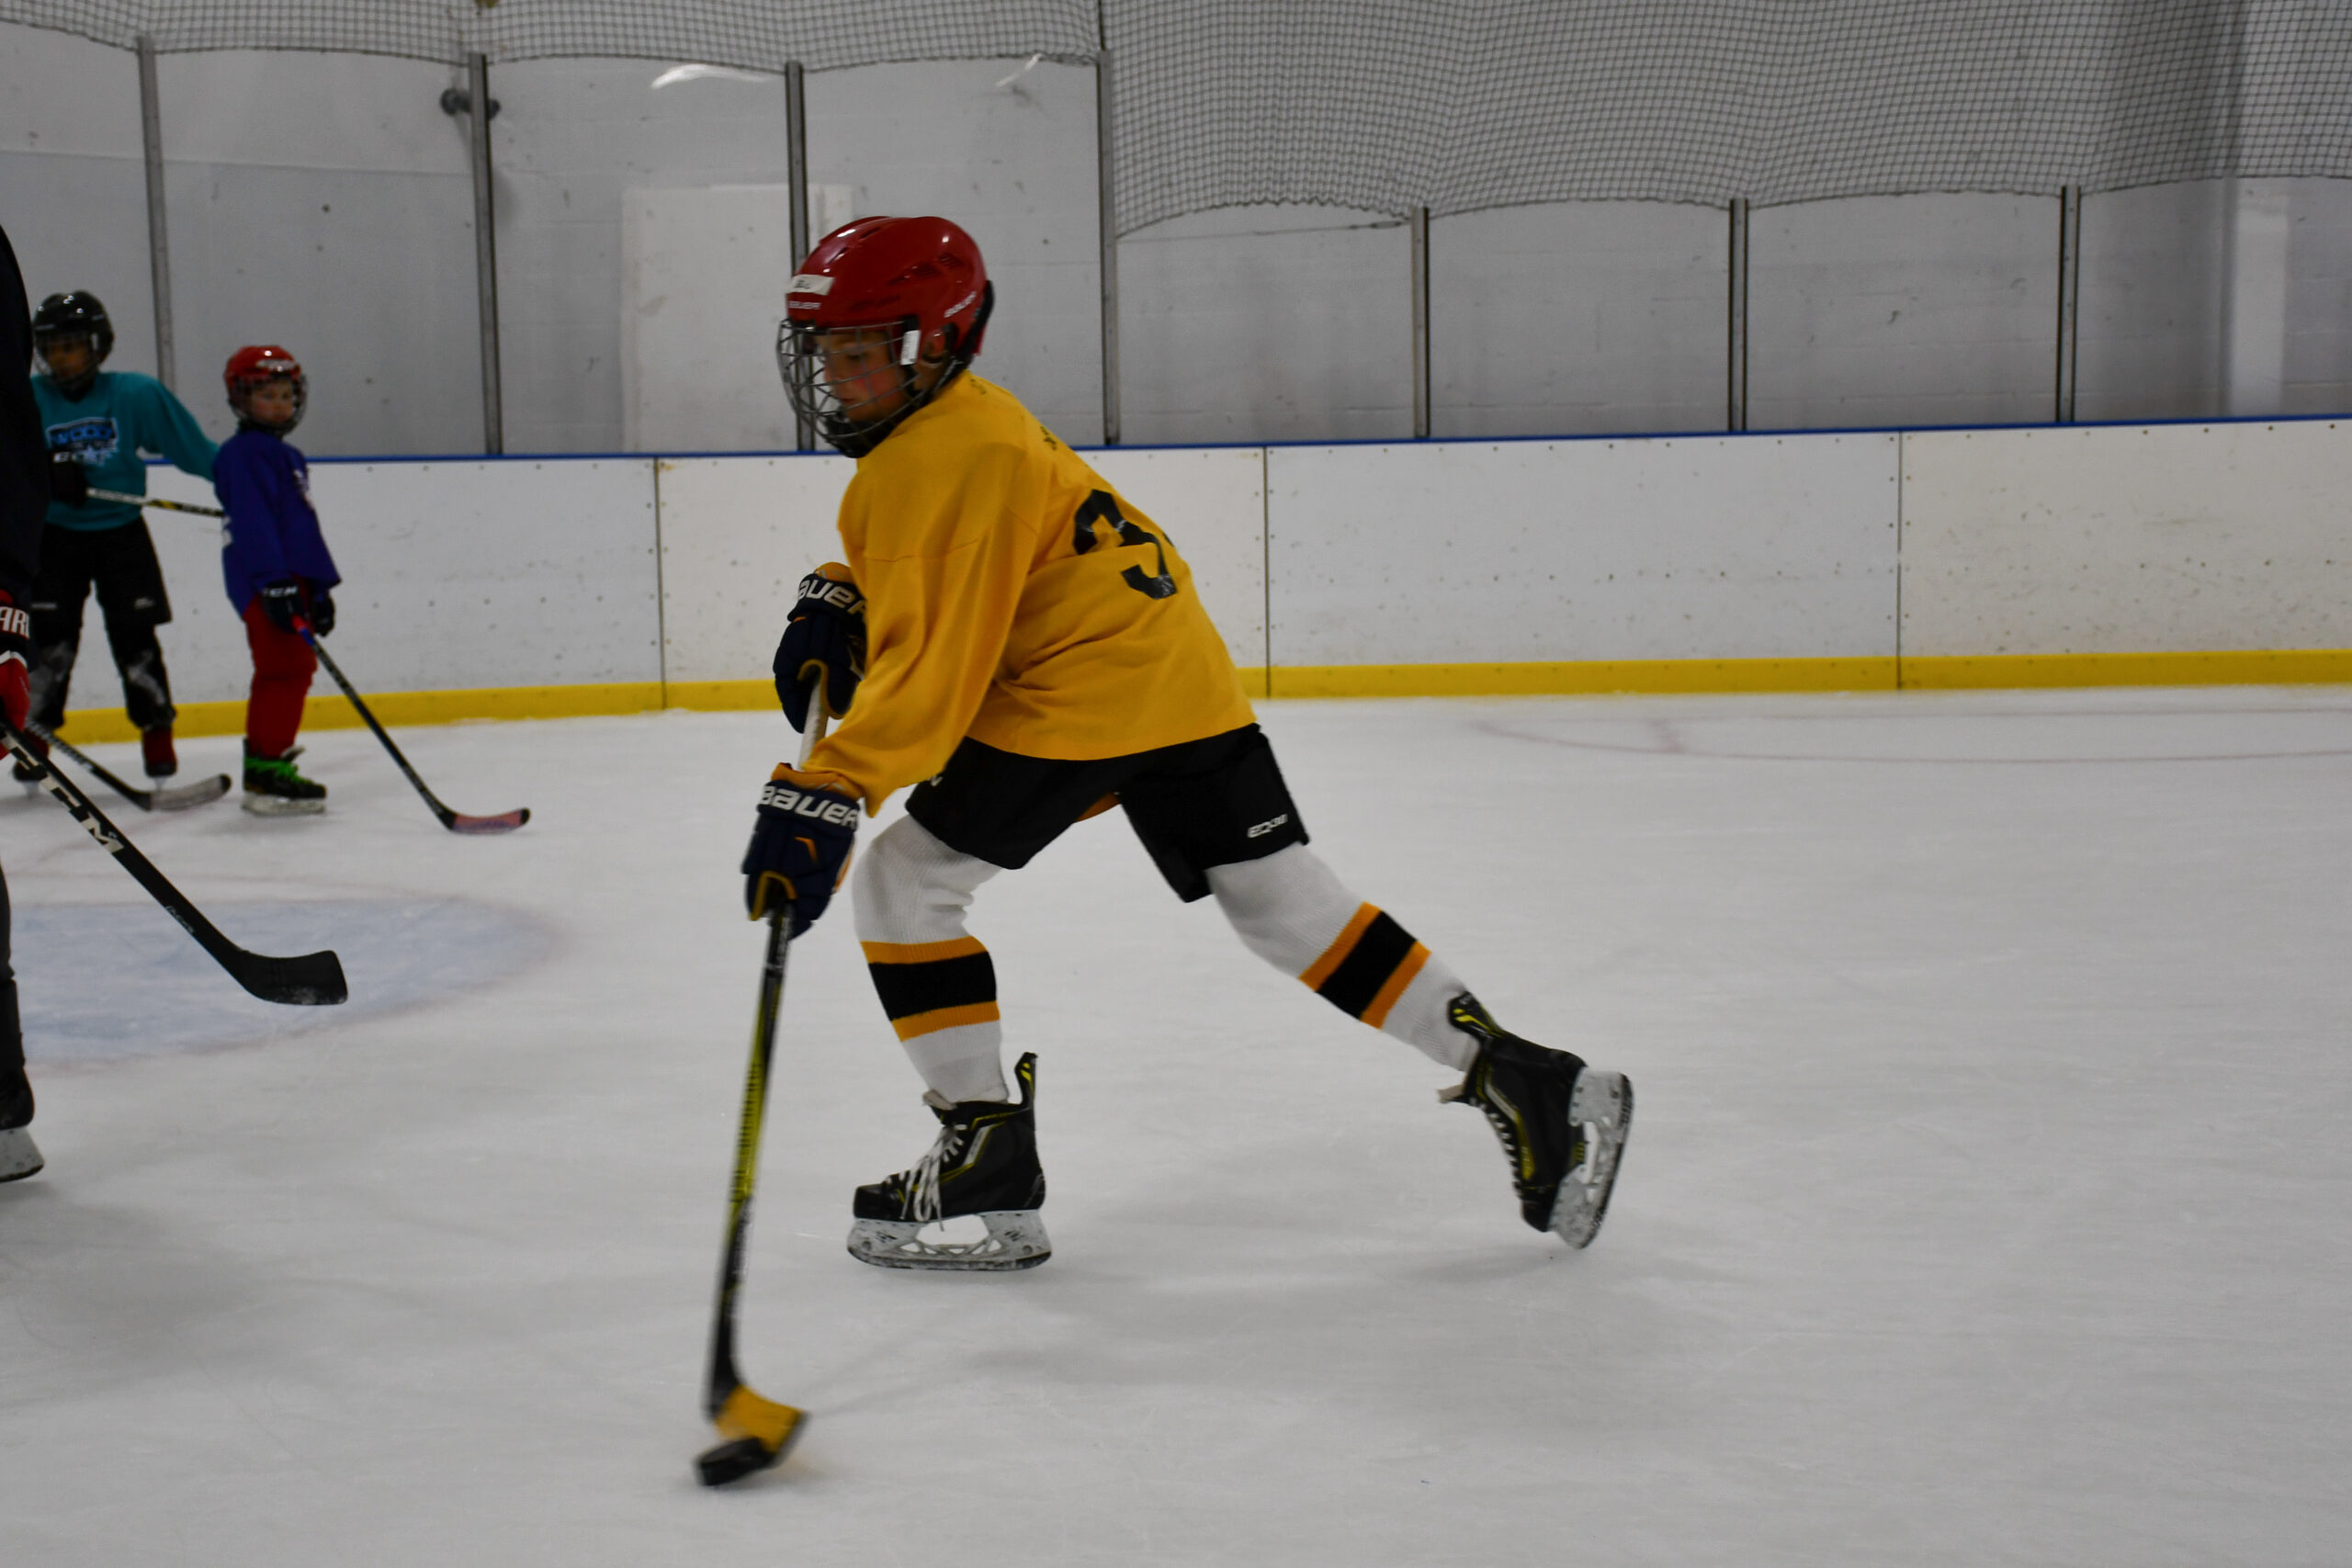 Willowbrook Ice Arena youth hockey player